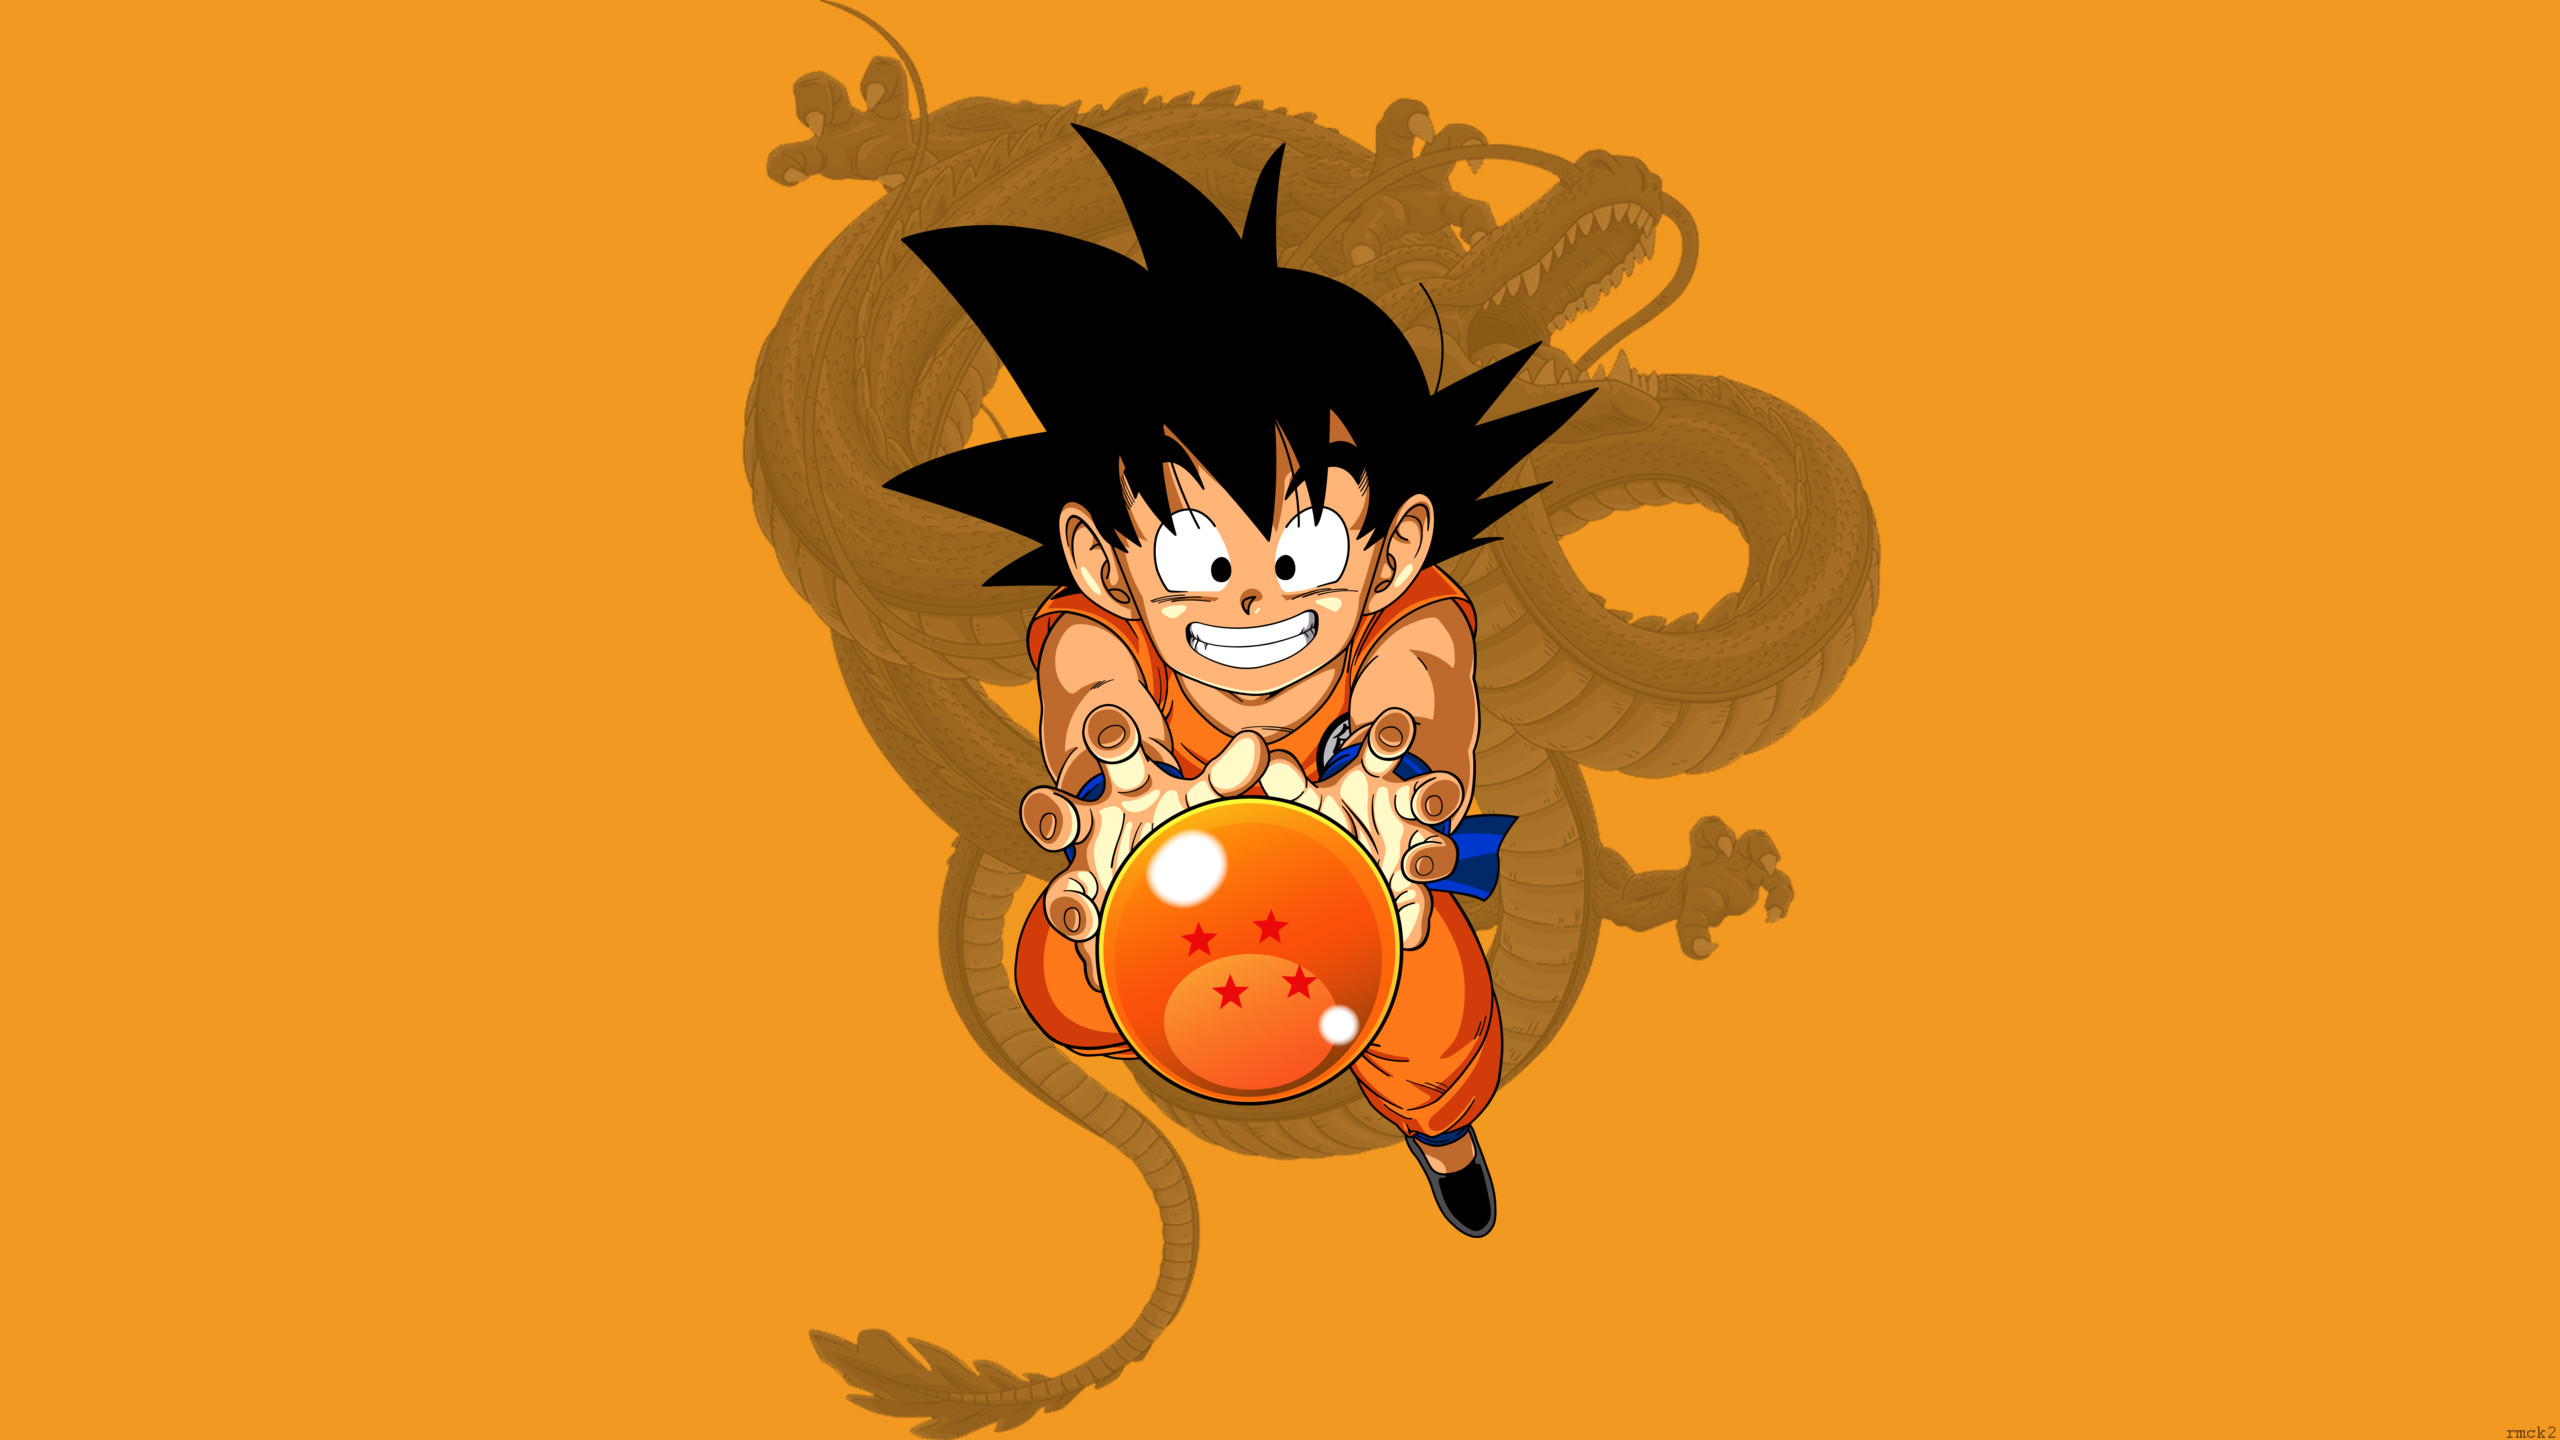 Dragon ball Wallpaper 2 by rmck2 on DeviantArt